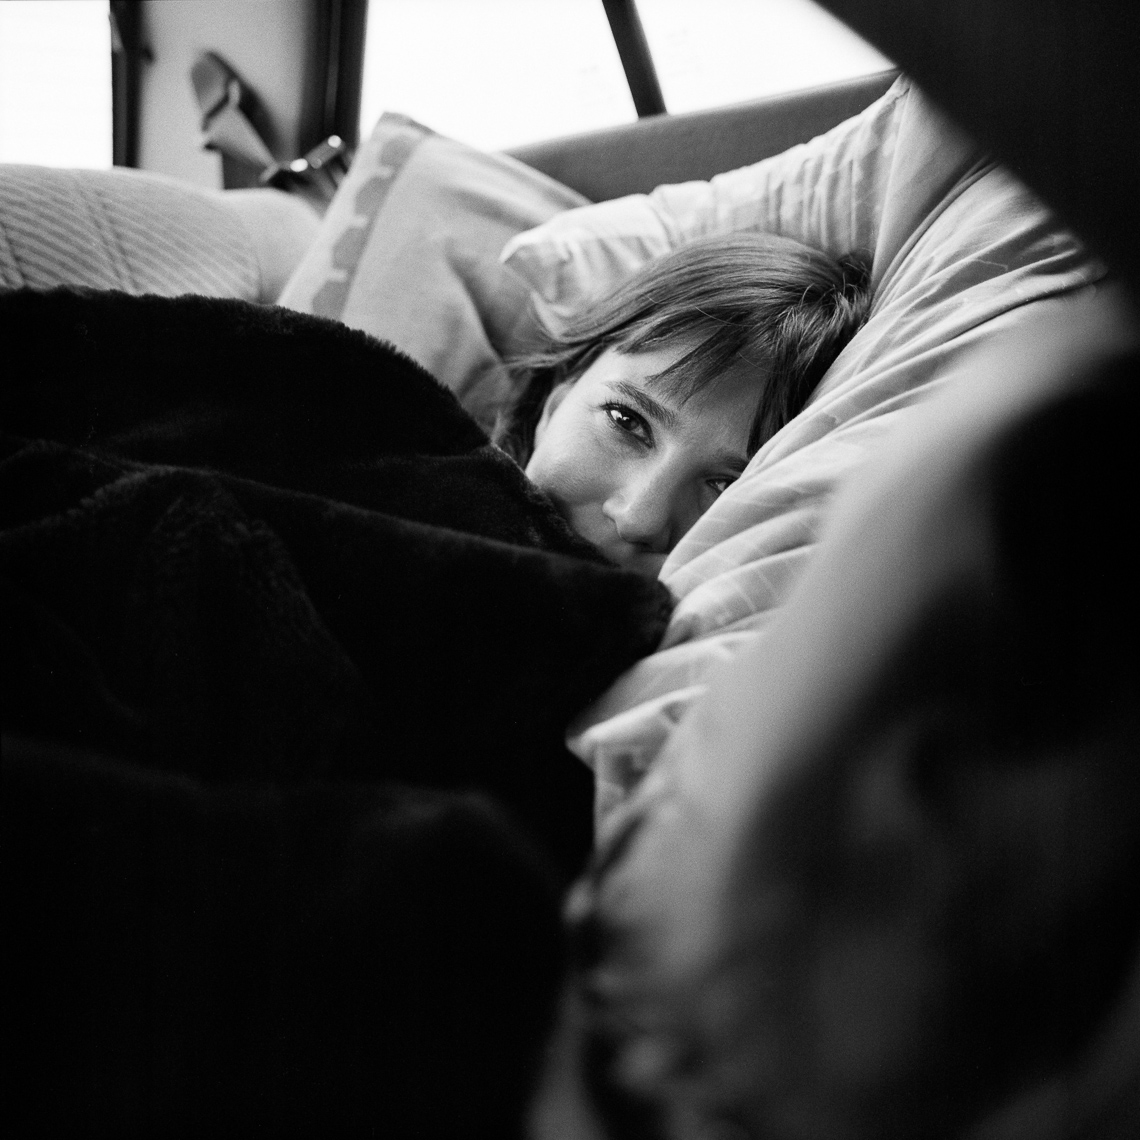 black-white-portrait-woman-bed